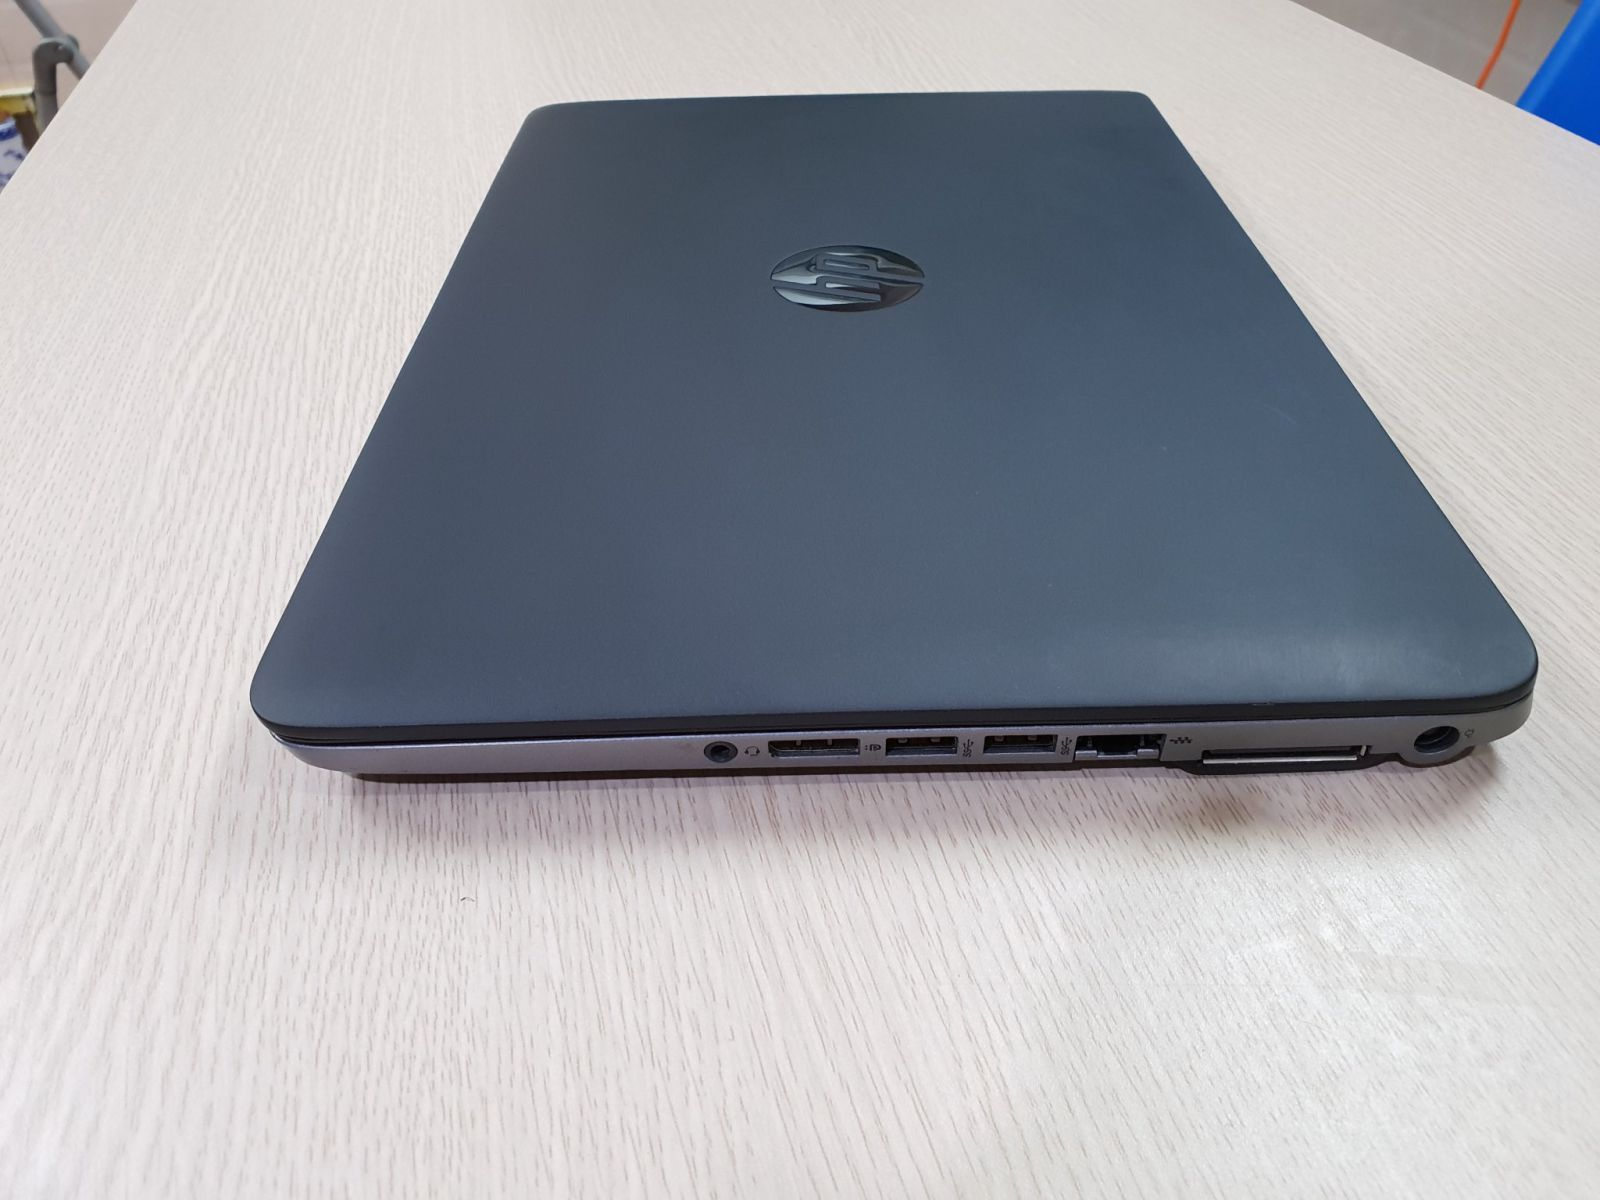 HP 840 G1 (Intel Core i5-4300U 1.9GHz, 8GB RAM, SSD 128GB)